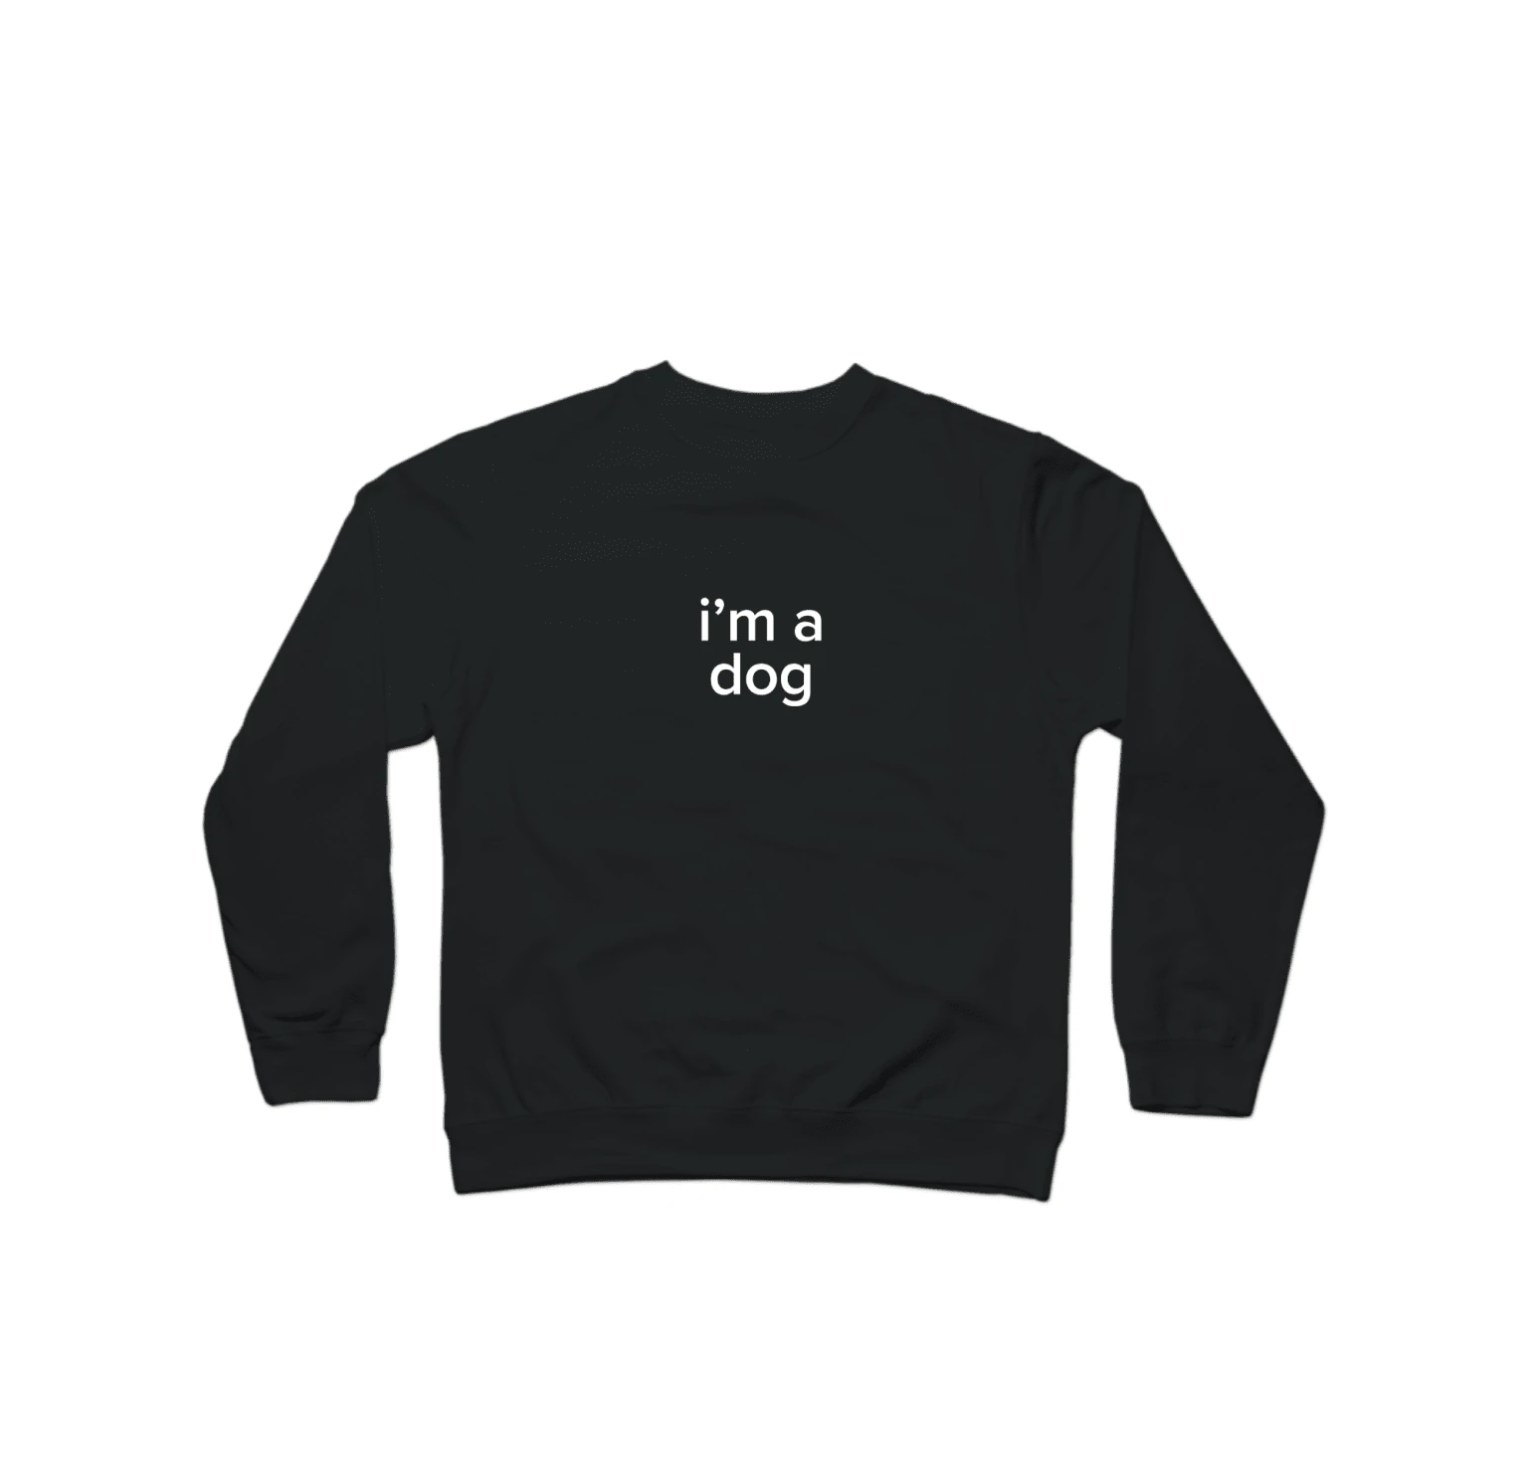 "The sweatshirt in black that says ""I'm a dog"""